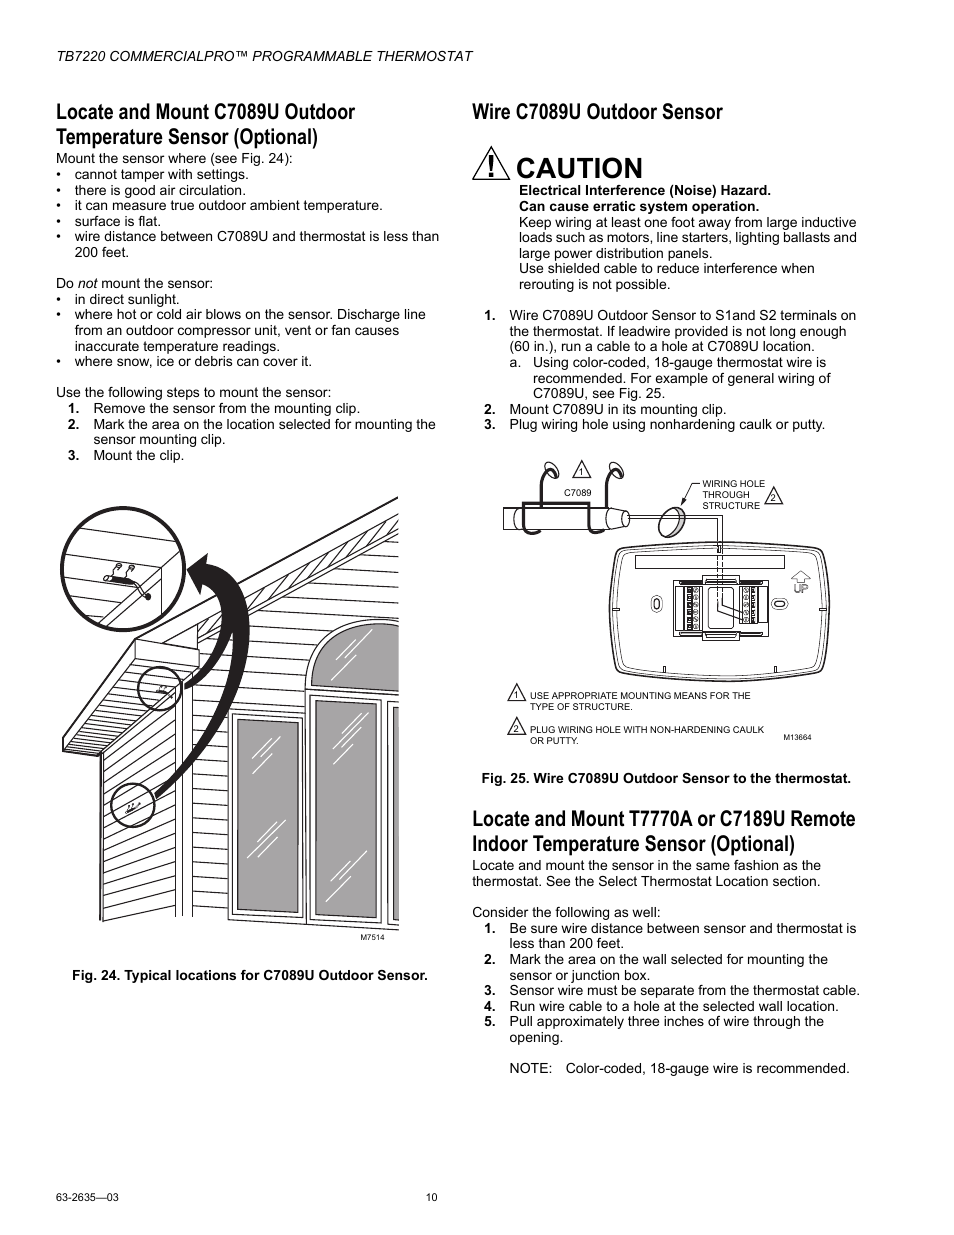 Wire C7089u Outdoor Sensor Caution Honeywell Commercialpro Tb7220 Phone Line Wiring User Manual Page 10